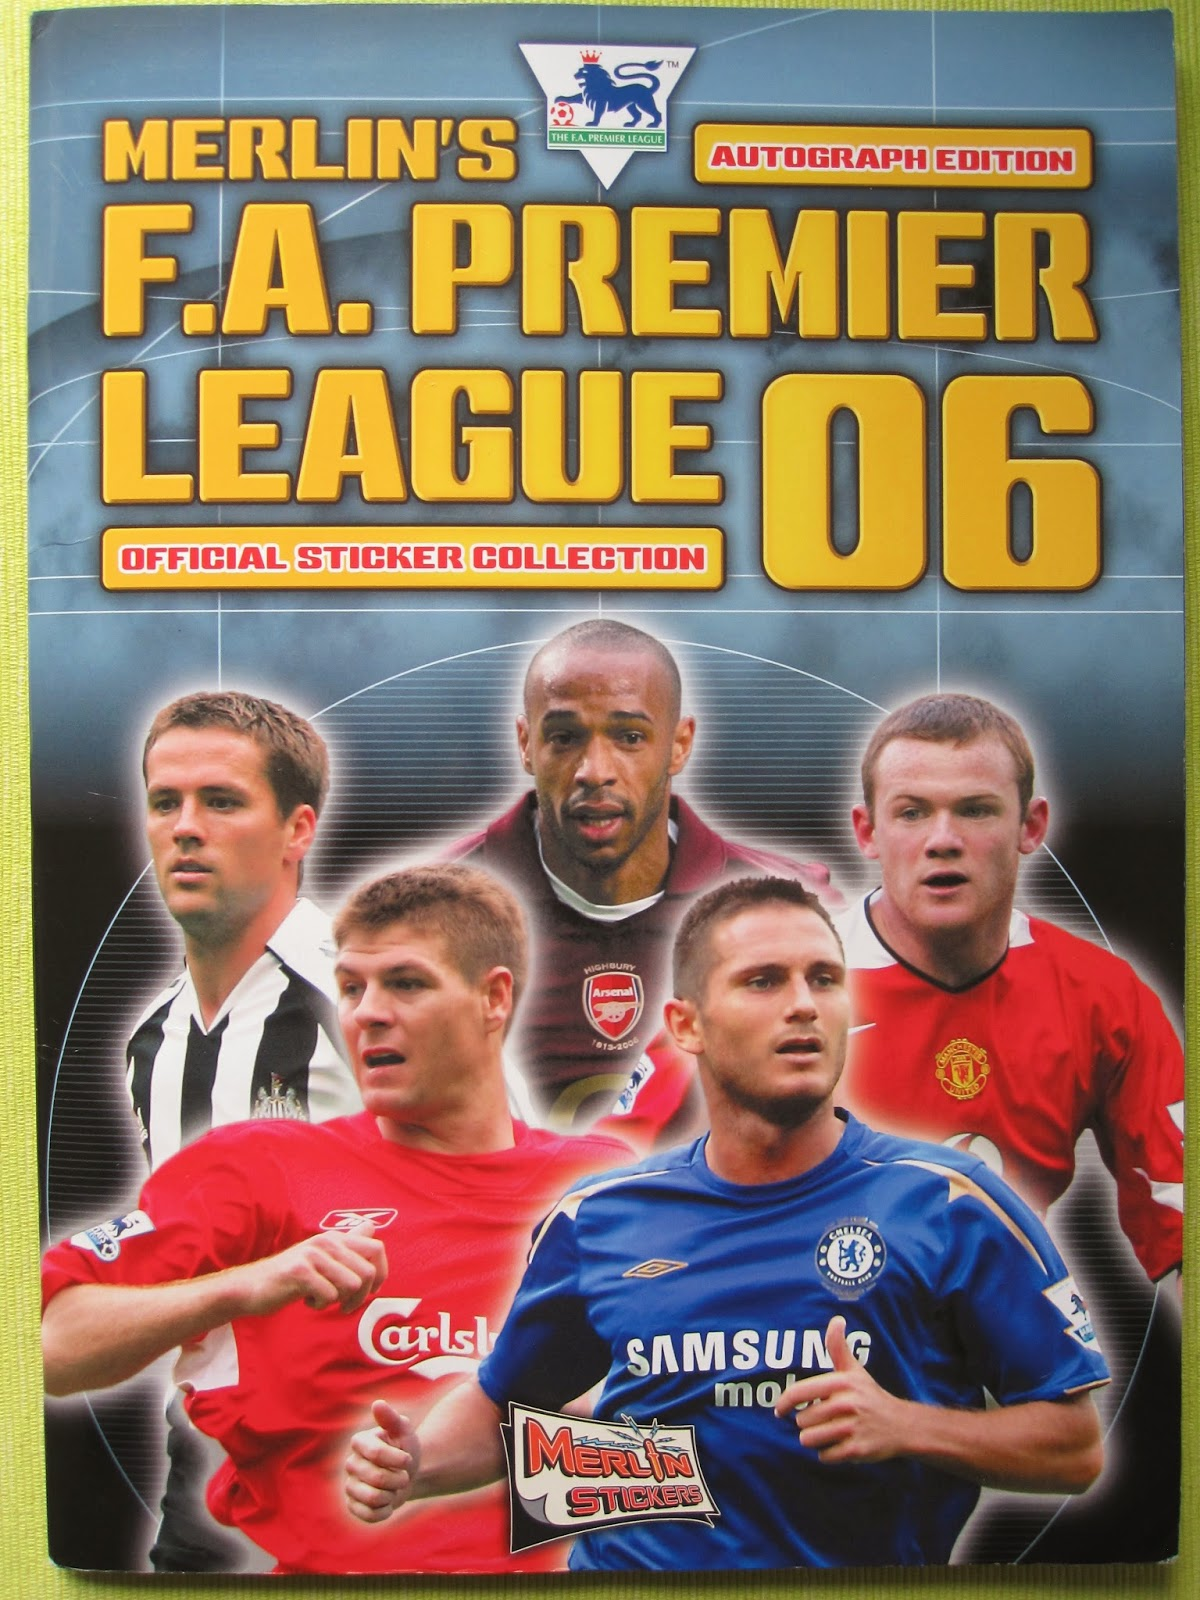 Only Good Stickers: Merlin's Premier League 2006